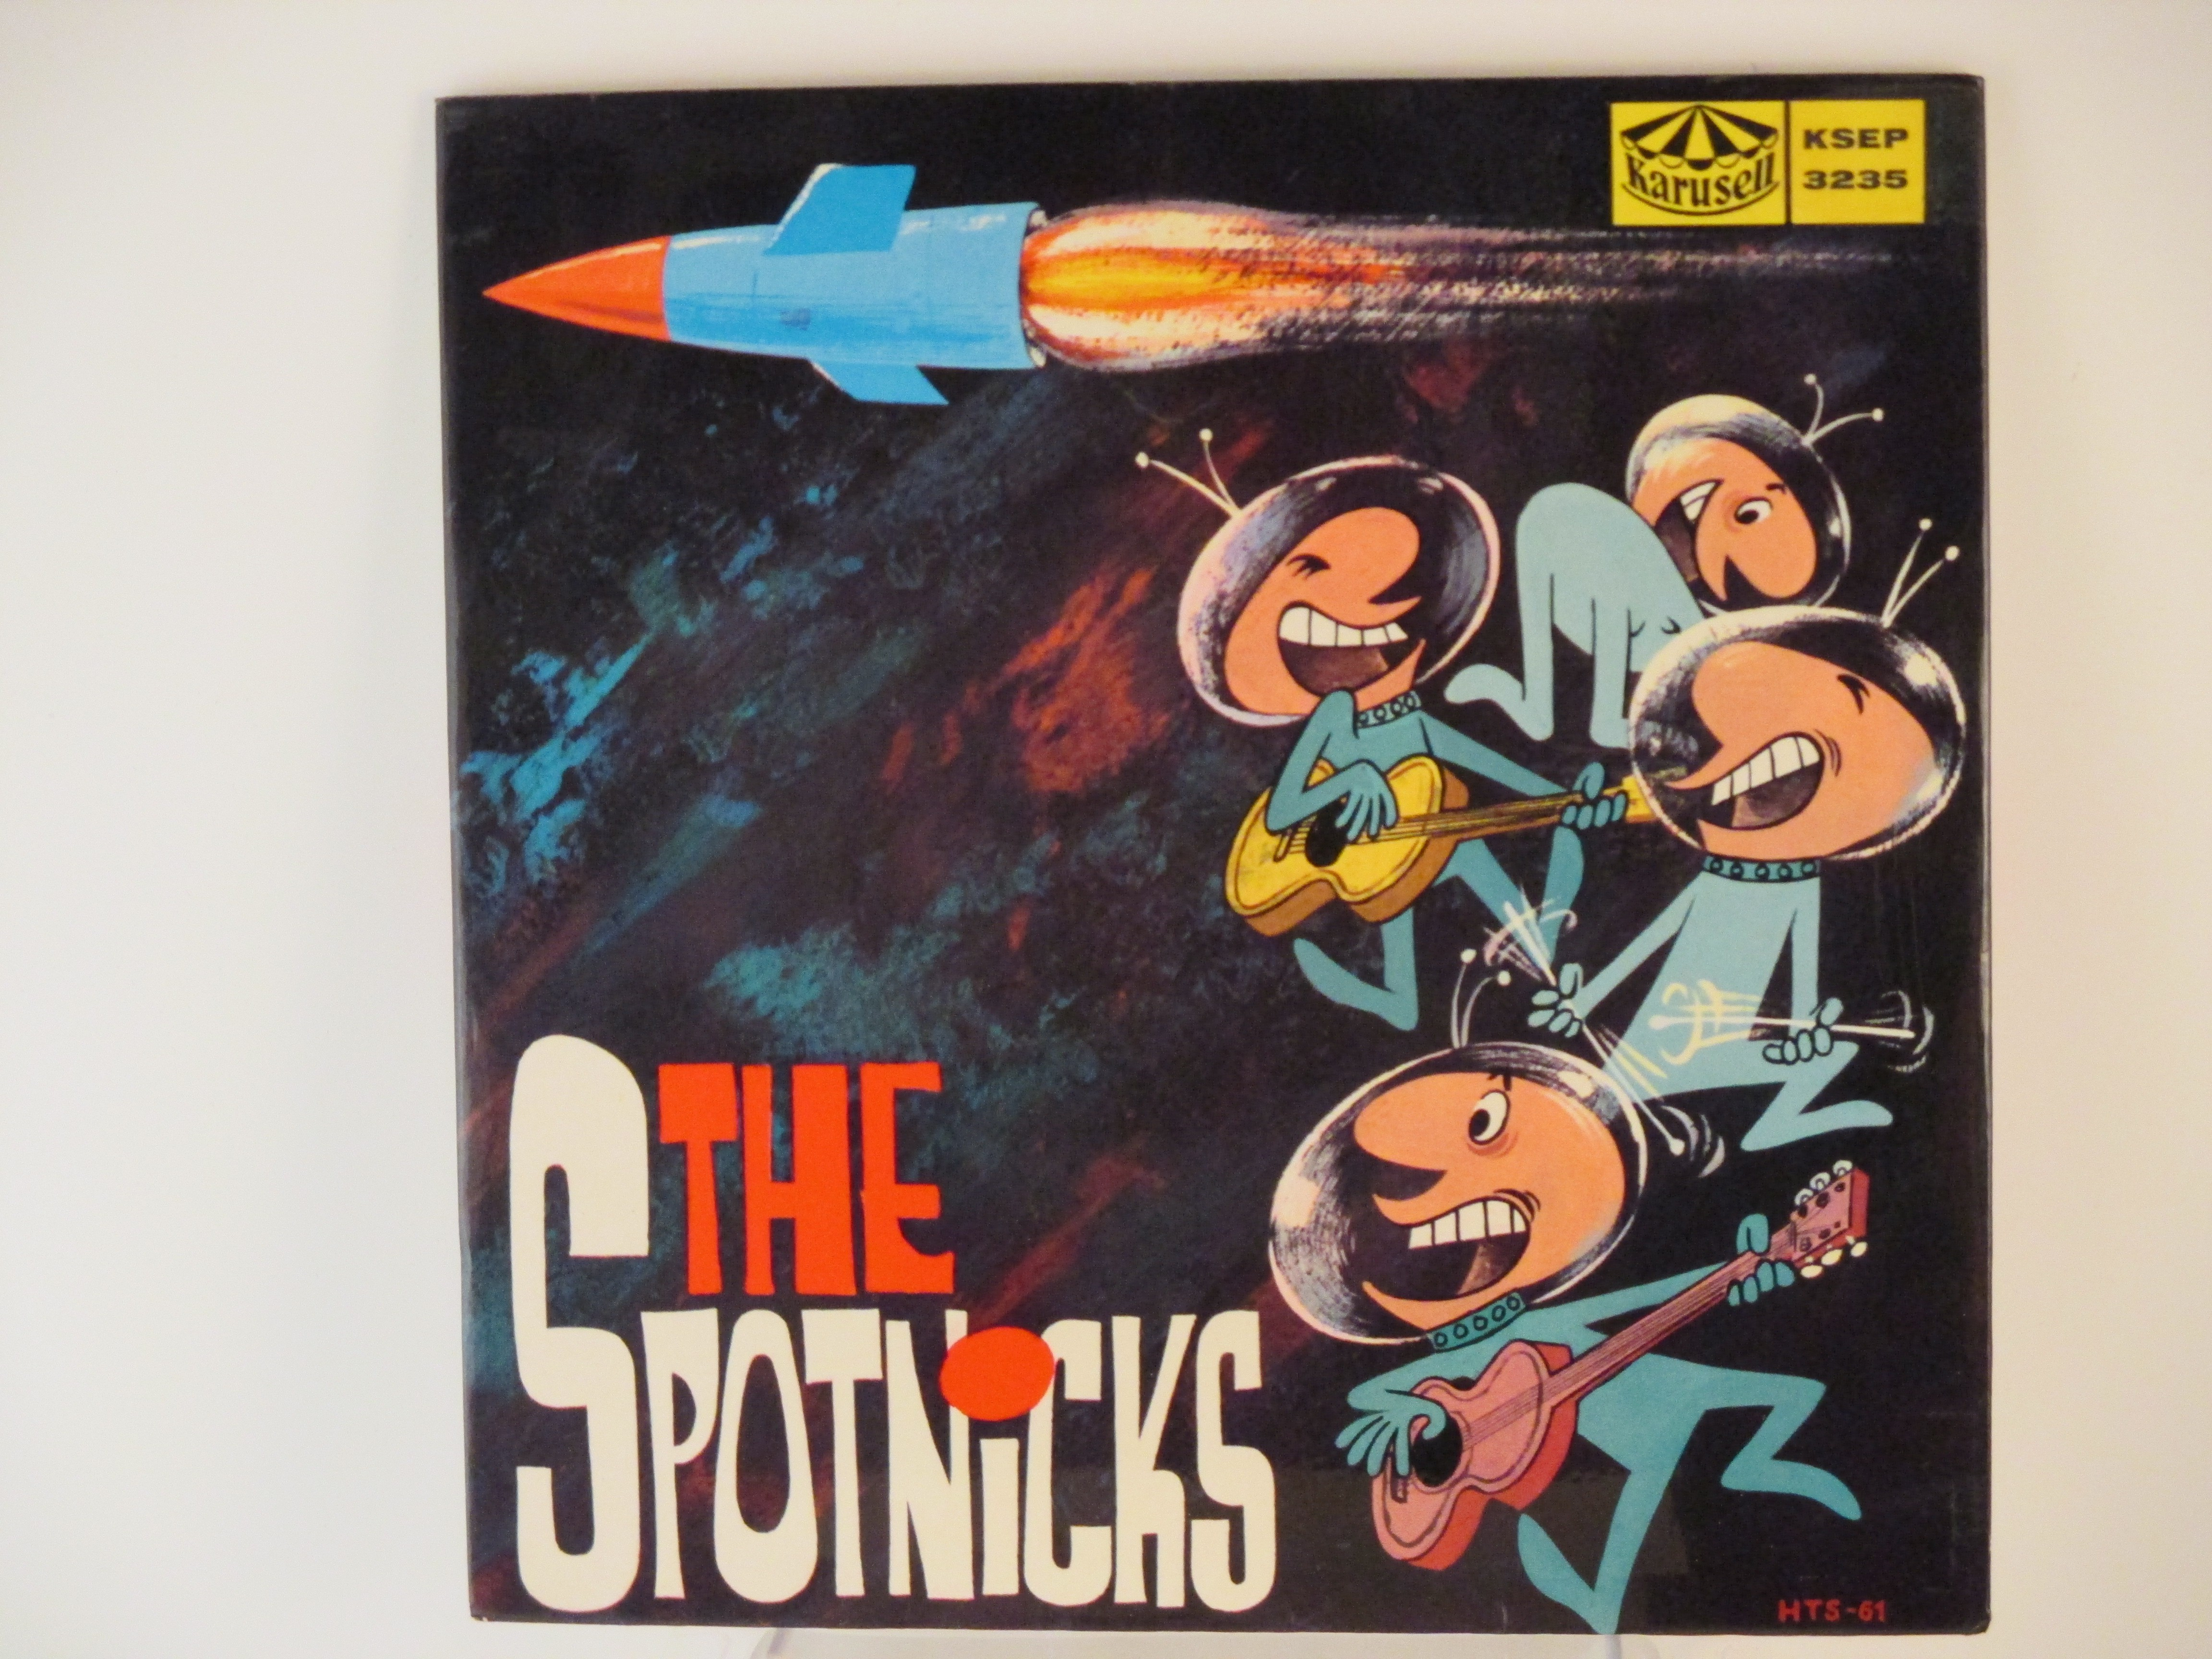 SPOTNICKS : (EP) The old spinning wheel / Ghosts riders in the sky / The Spotnicks' theme / Orange blossom special